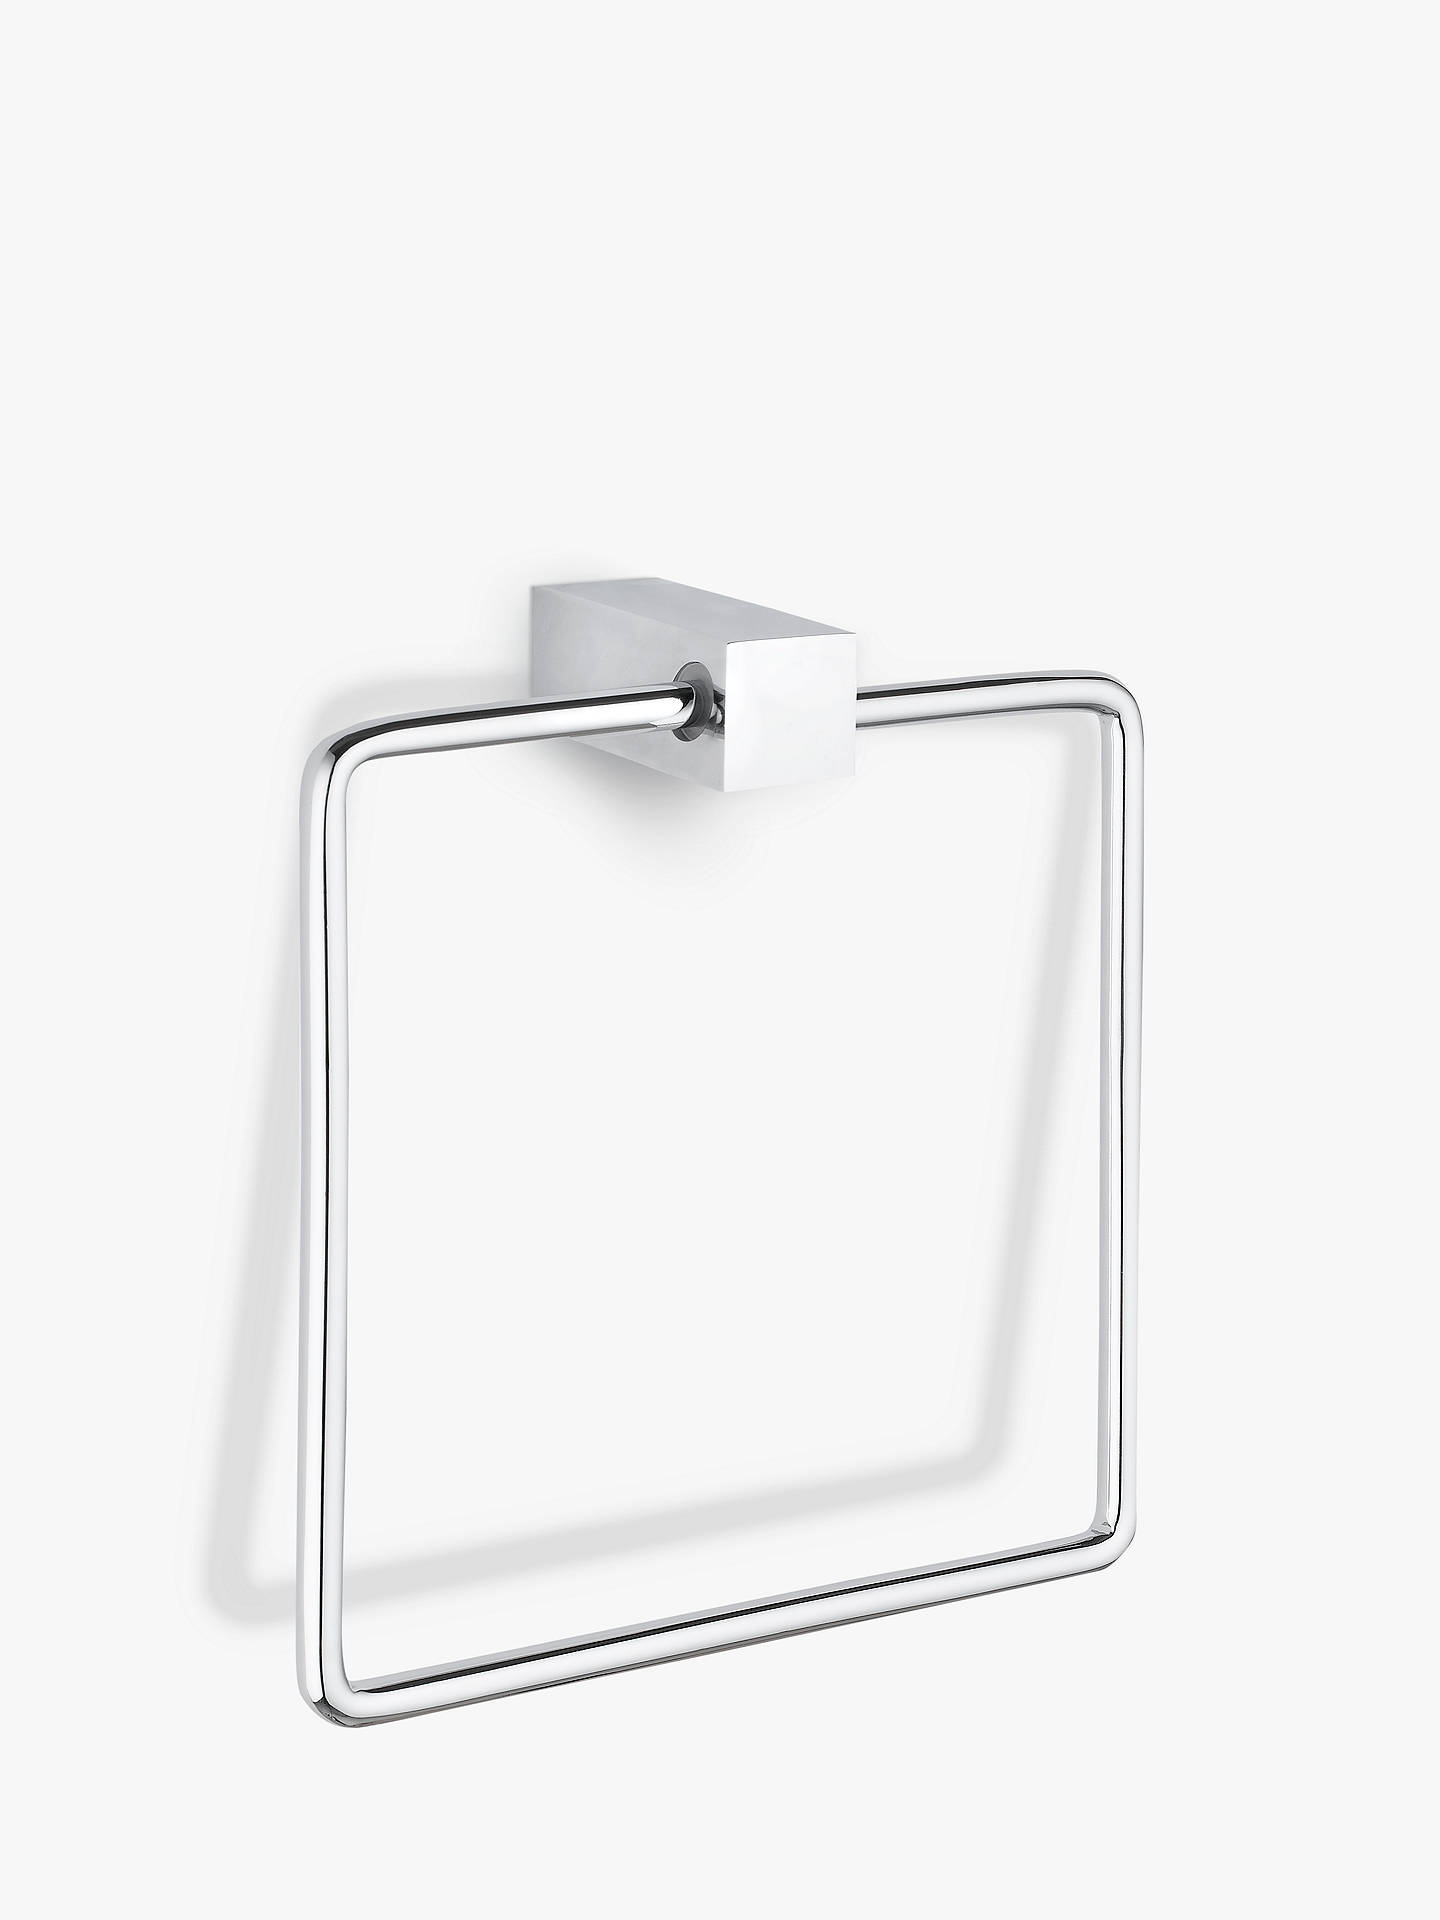 BuyJohn Lewis & Partners Ice Towel Ring Online at johnlewis.com